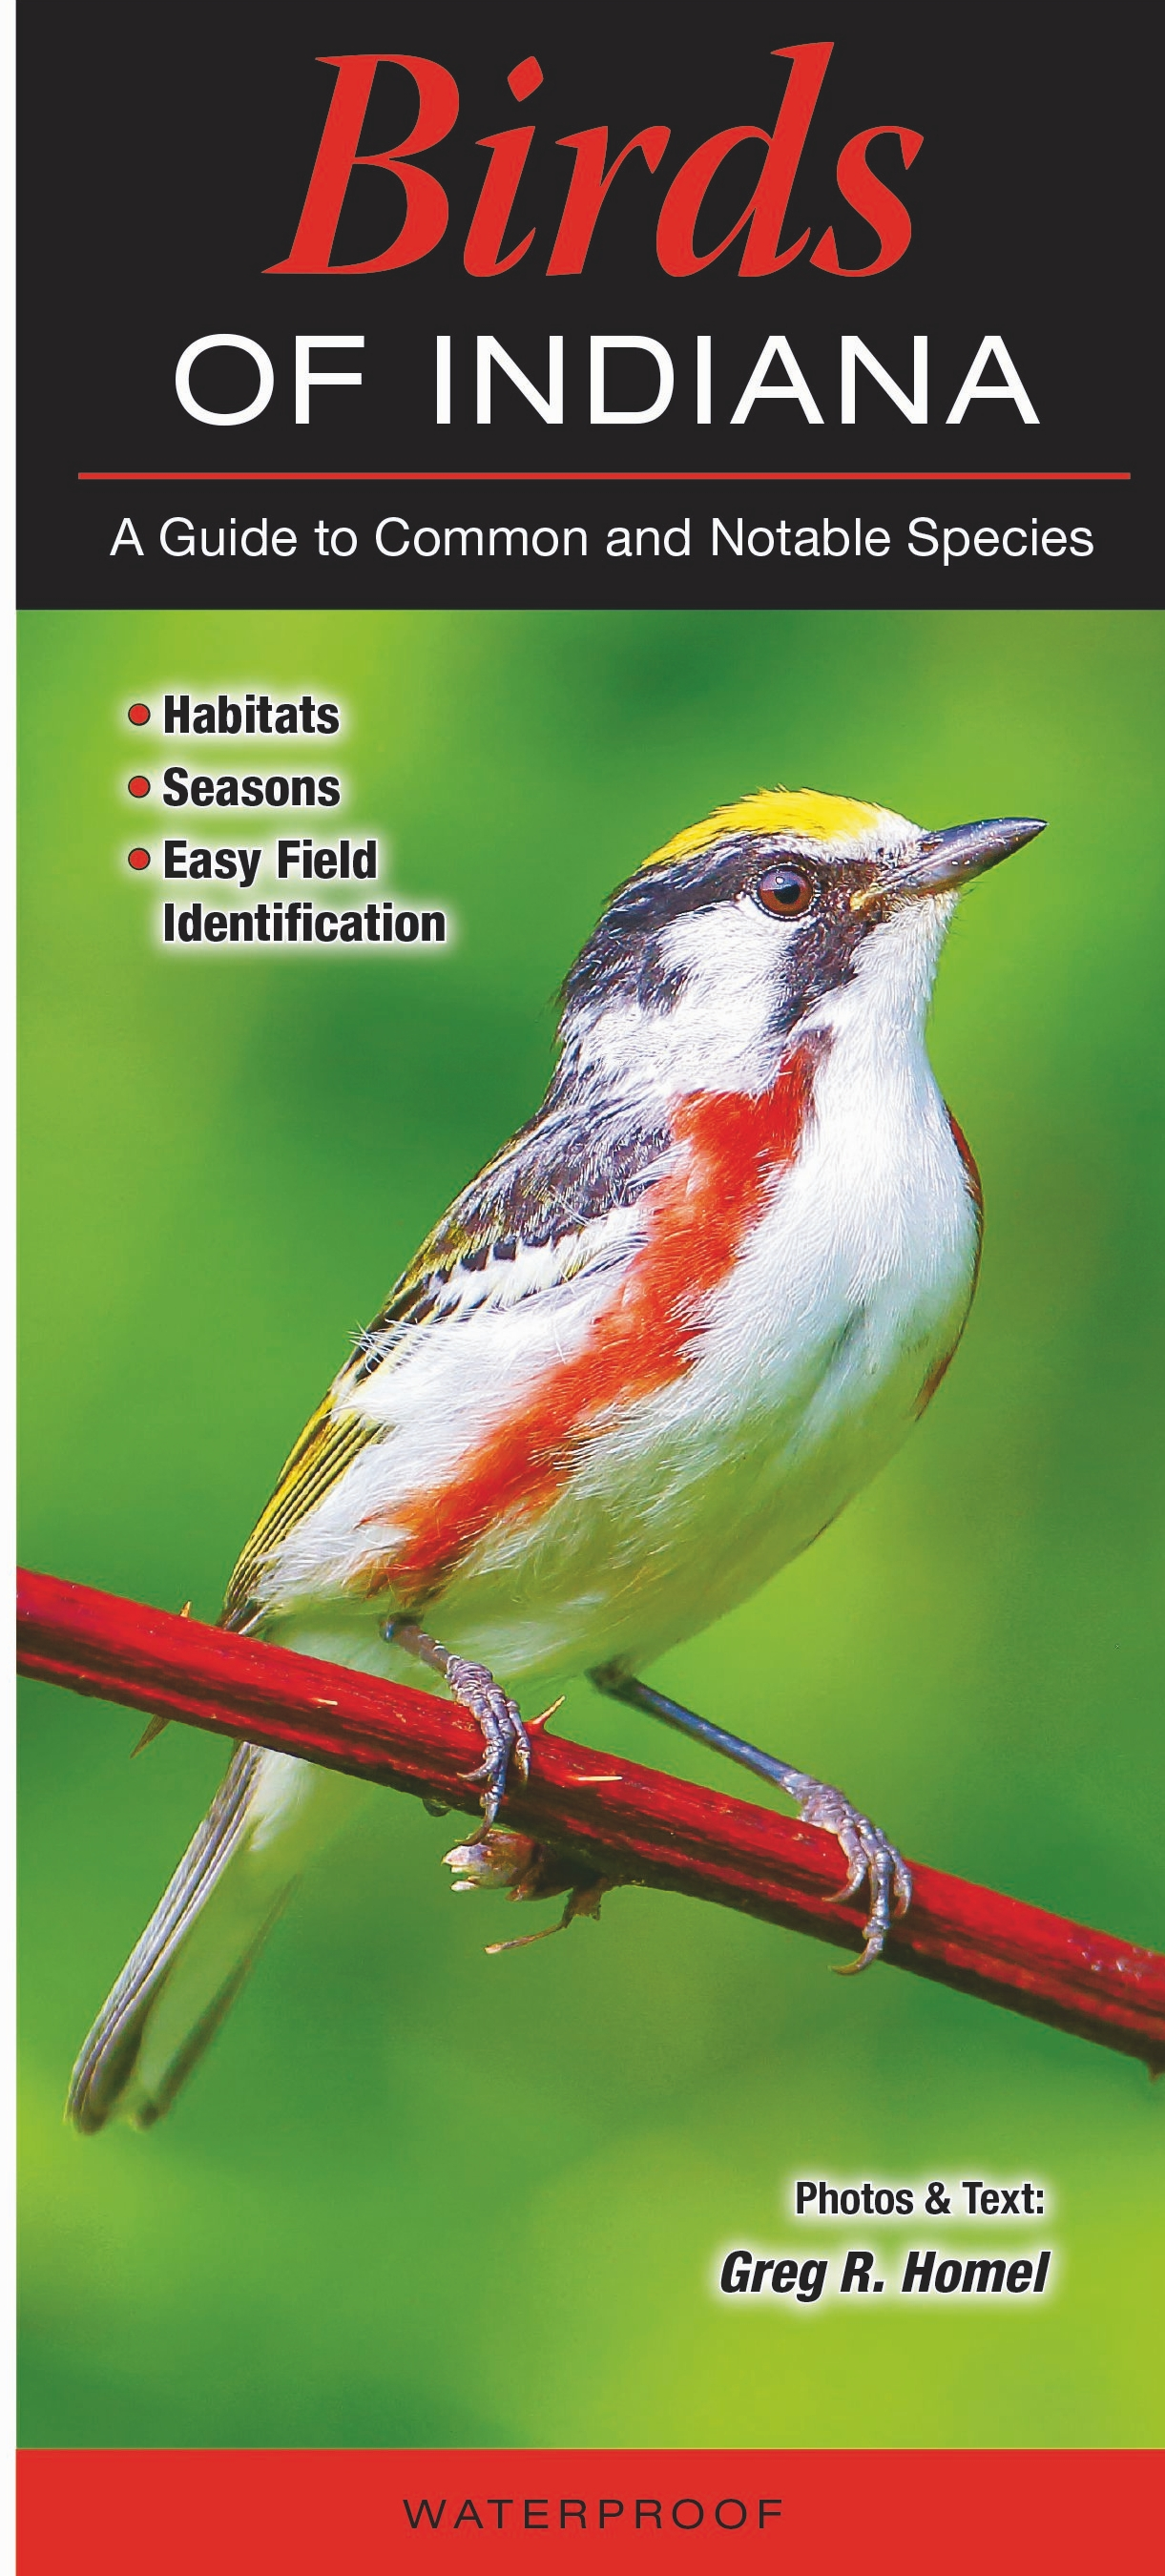 Pictures of birds native to indiana